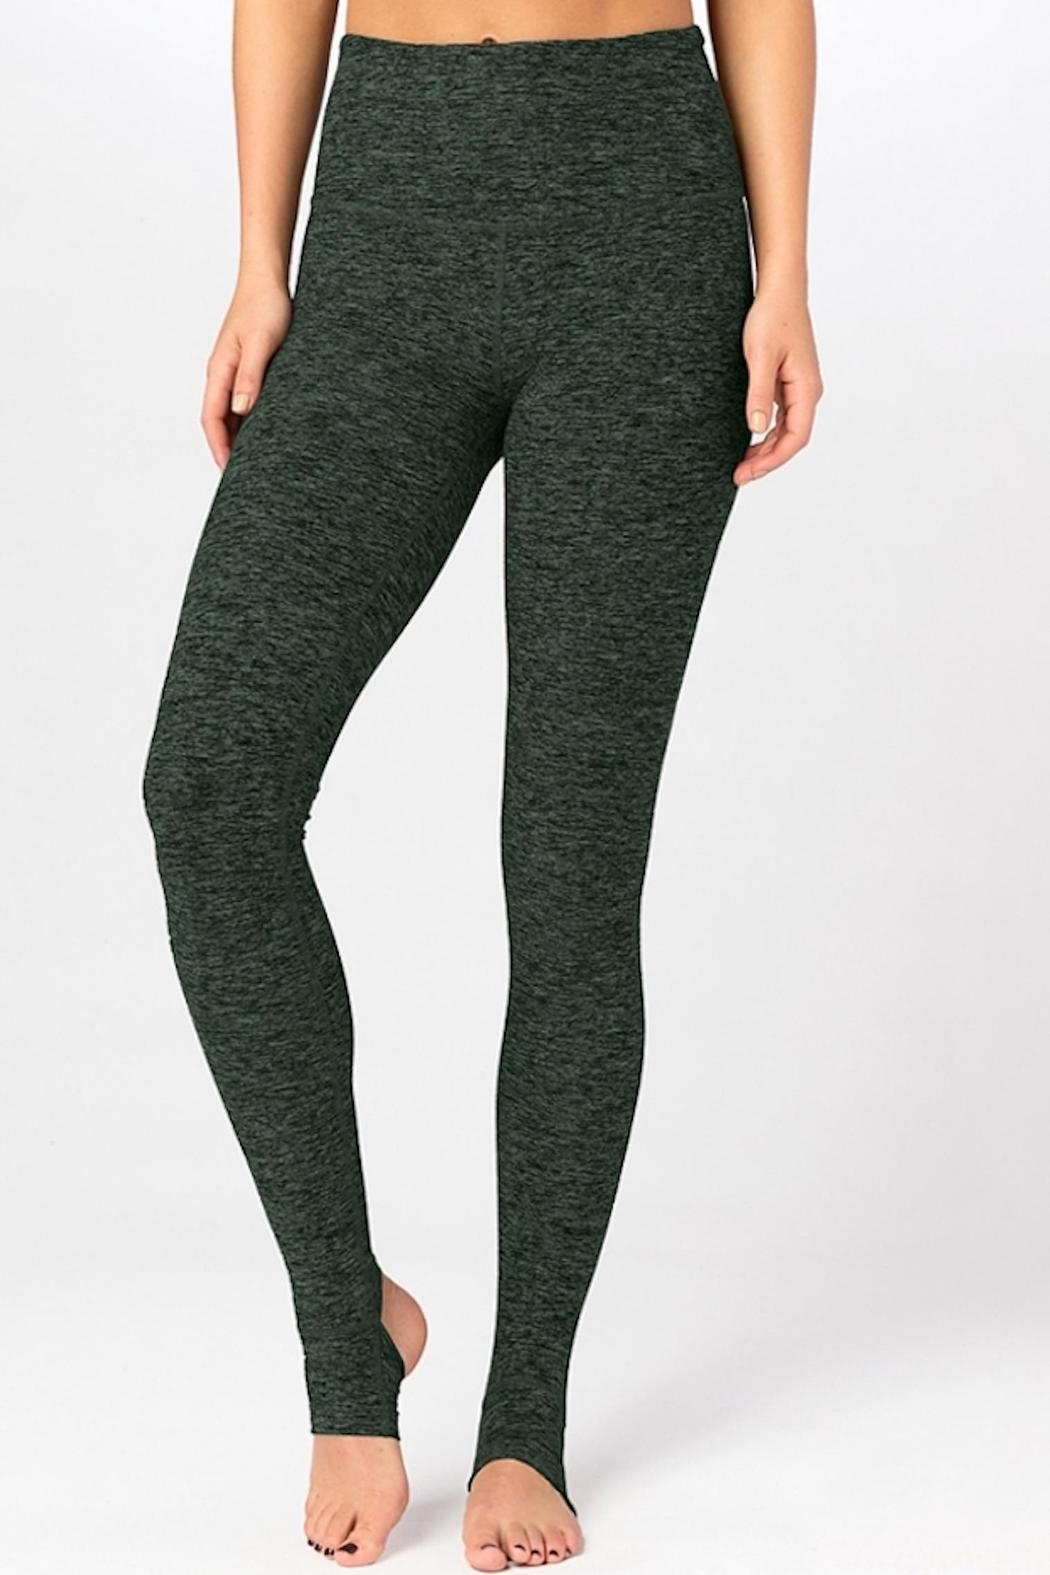 eed21e2e7932d4 Beyond Yoga High-Waisted Stirrup Leggings from Hawaii by Yoga ...